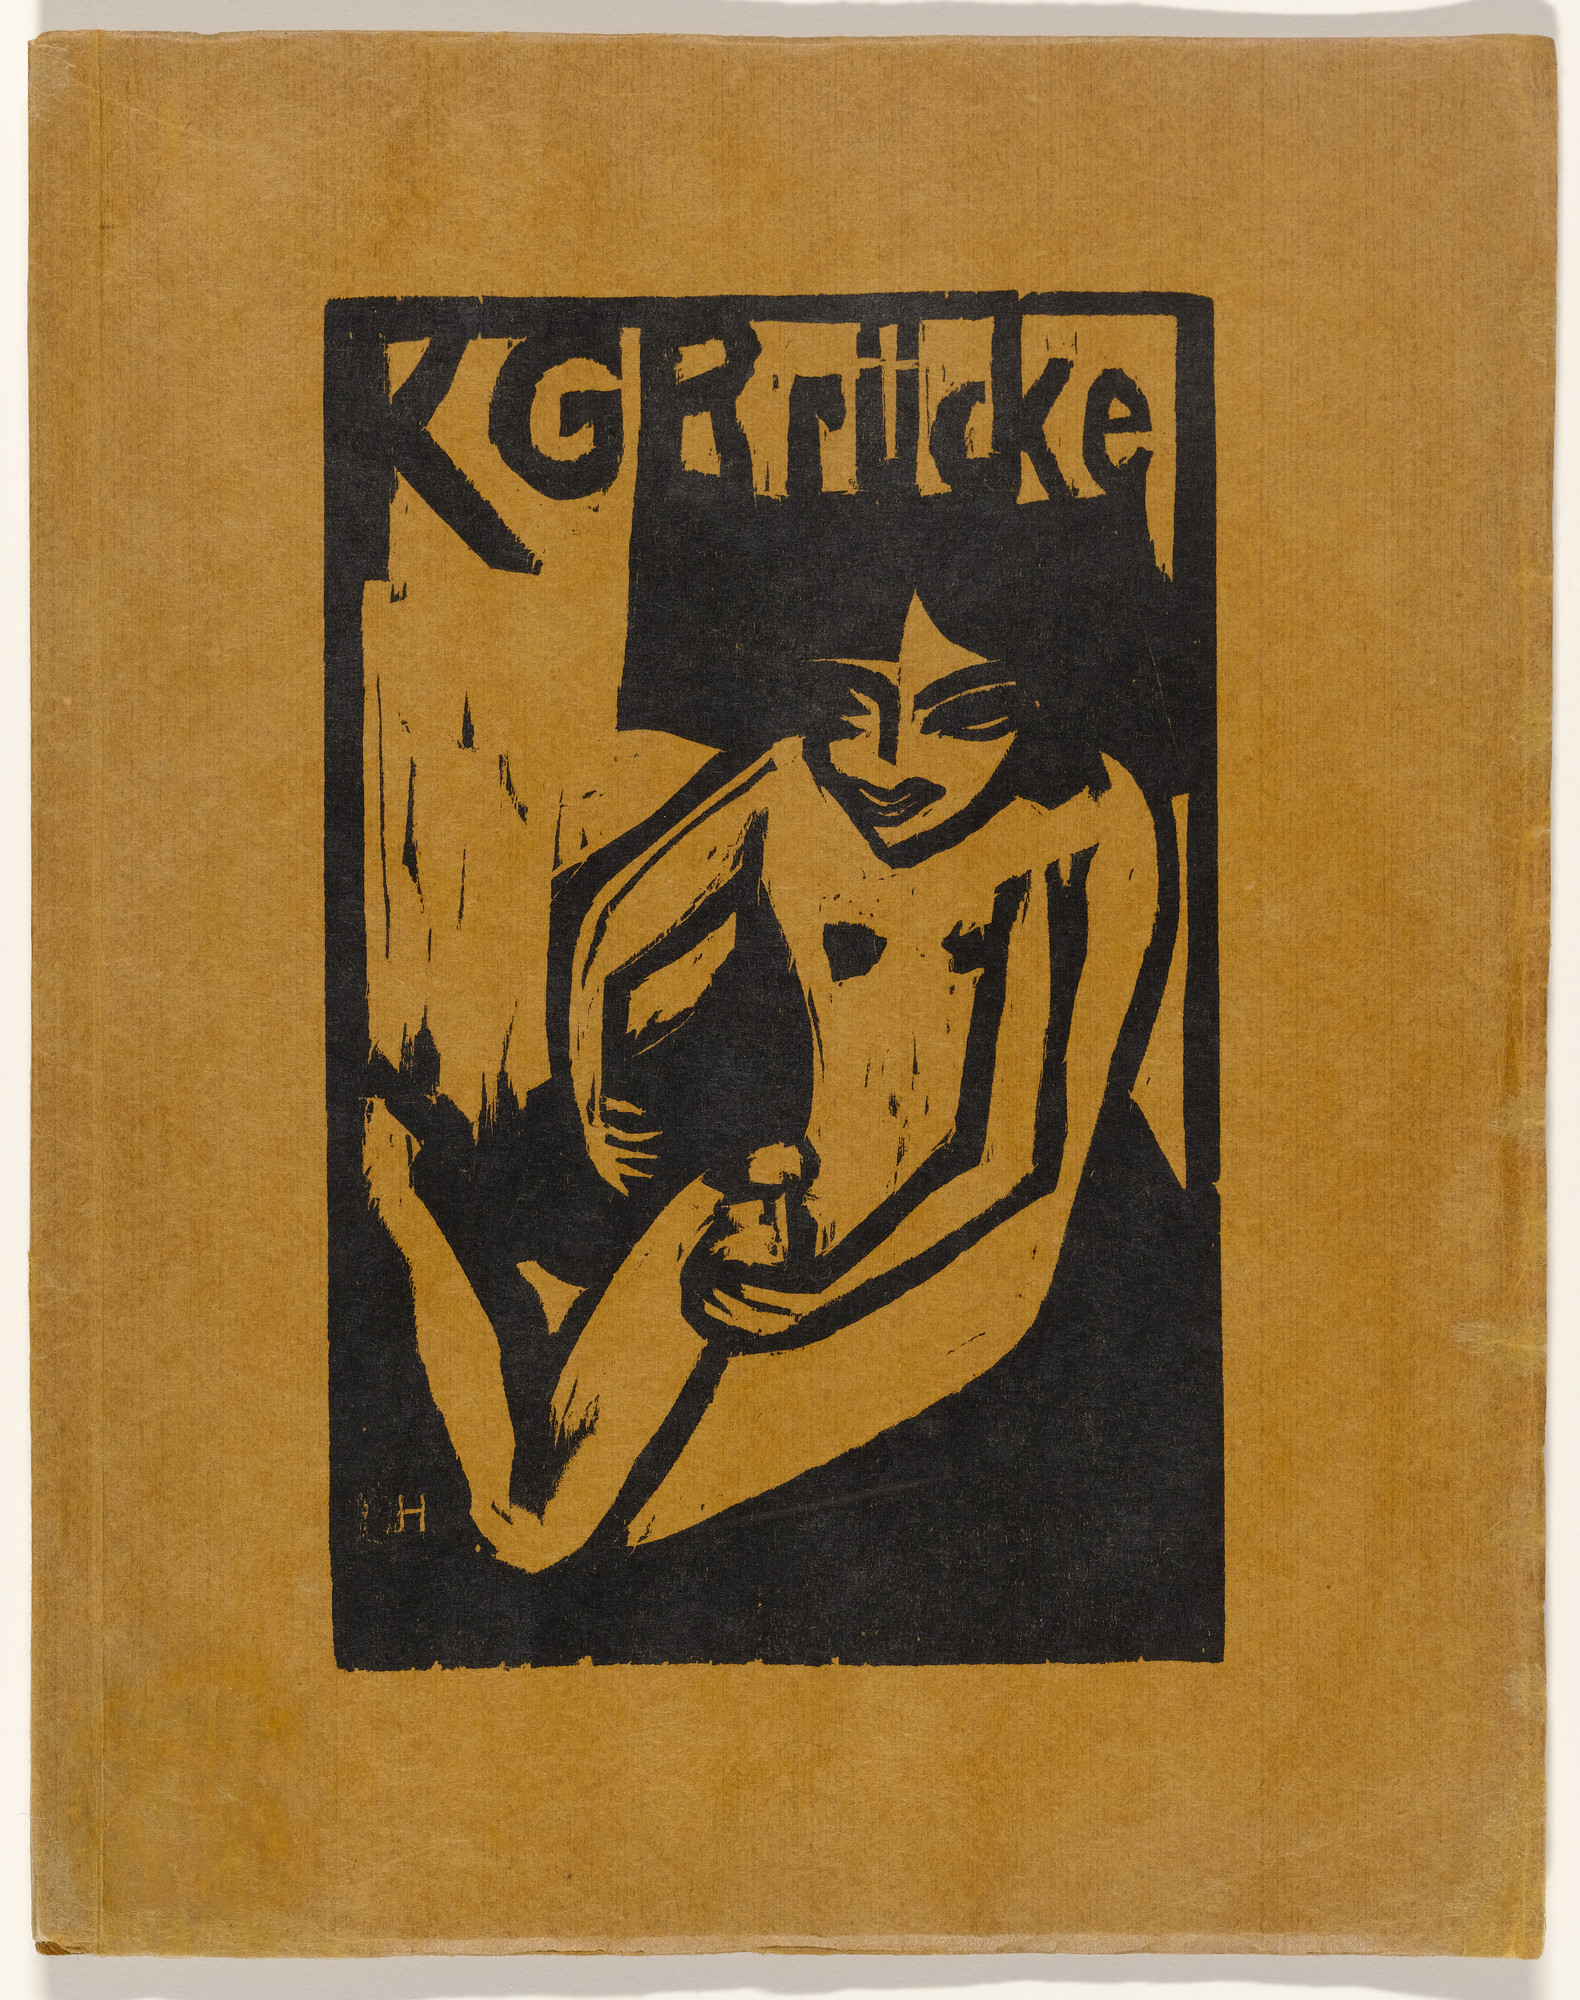 Erich Heckel. Fränzi with Doll (Fränzi mit Puppe) (cover) from KG Brücke. 1910